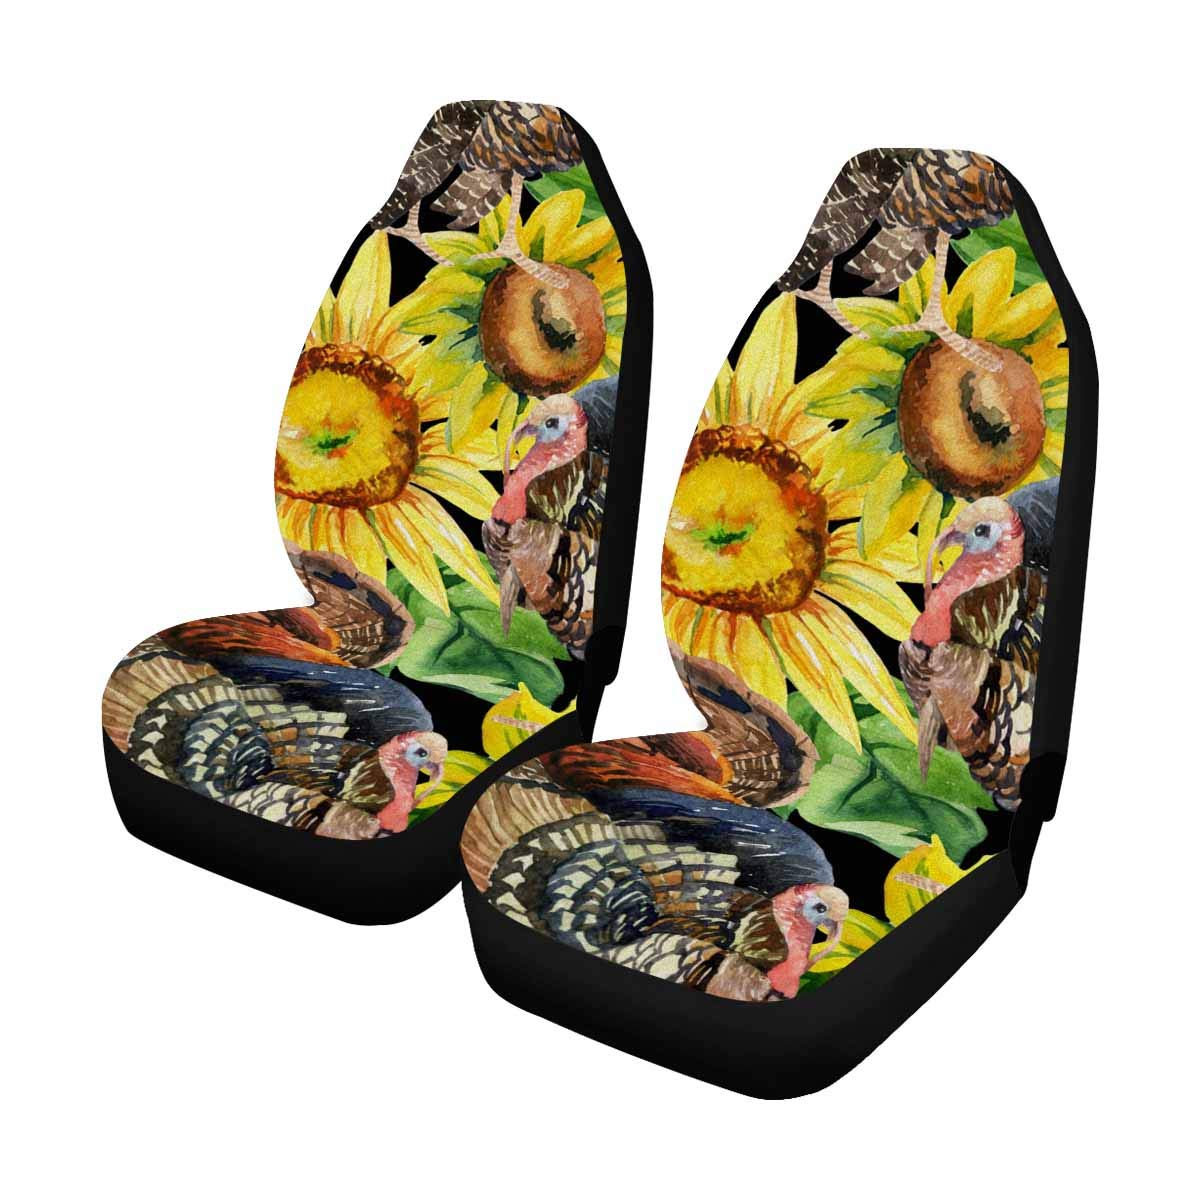 Sedan and Jeep Universal fit for Vehicles InterestPrint Peacock Feather Car Seat Cover Front Seats Only Full Set of 2